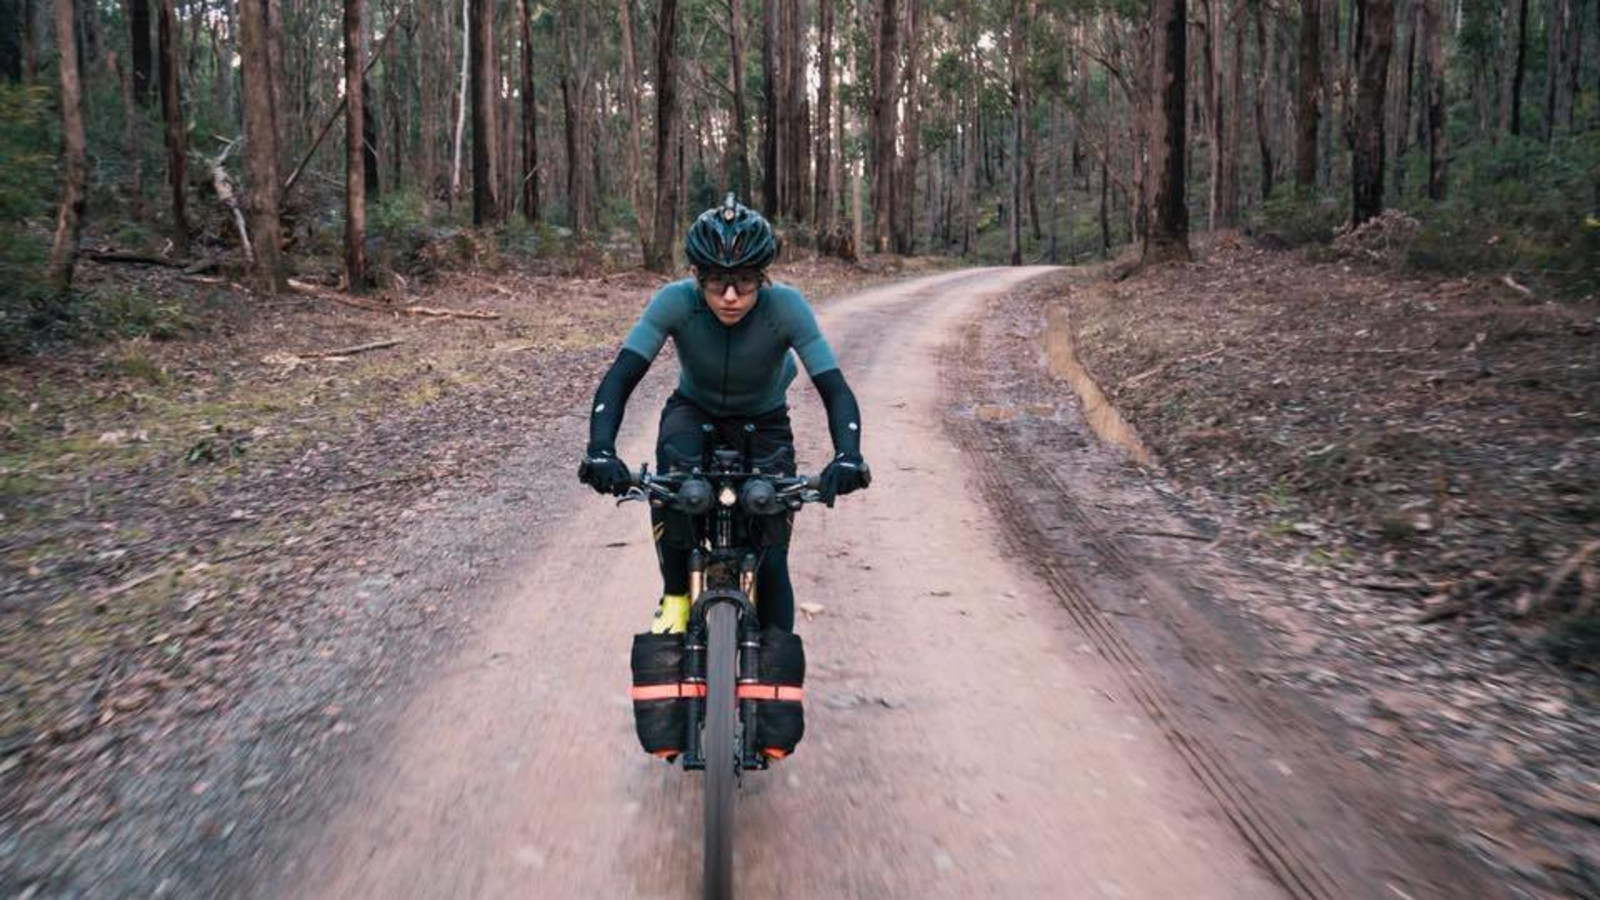 Five Minutes With... Emma Flukes